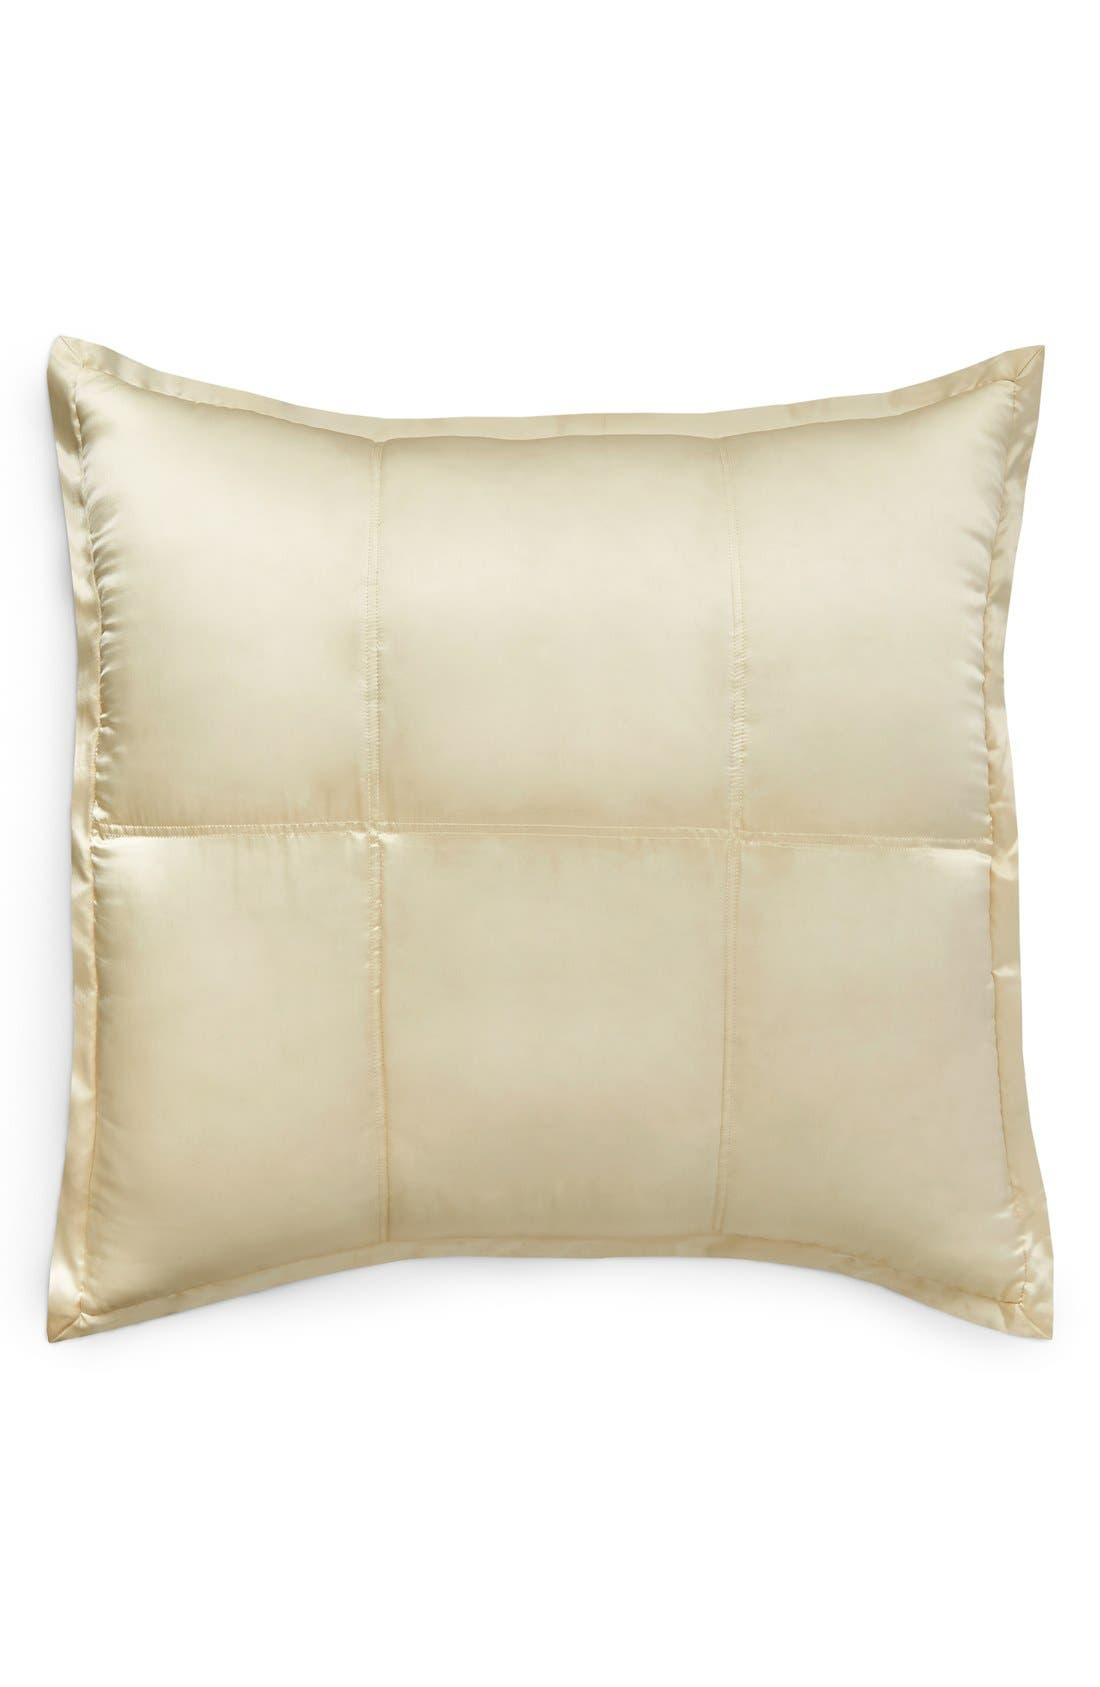 Donna Karan Collection 'Reflection' Euro Sham,                             Main thumbnail 2, color,